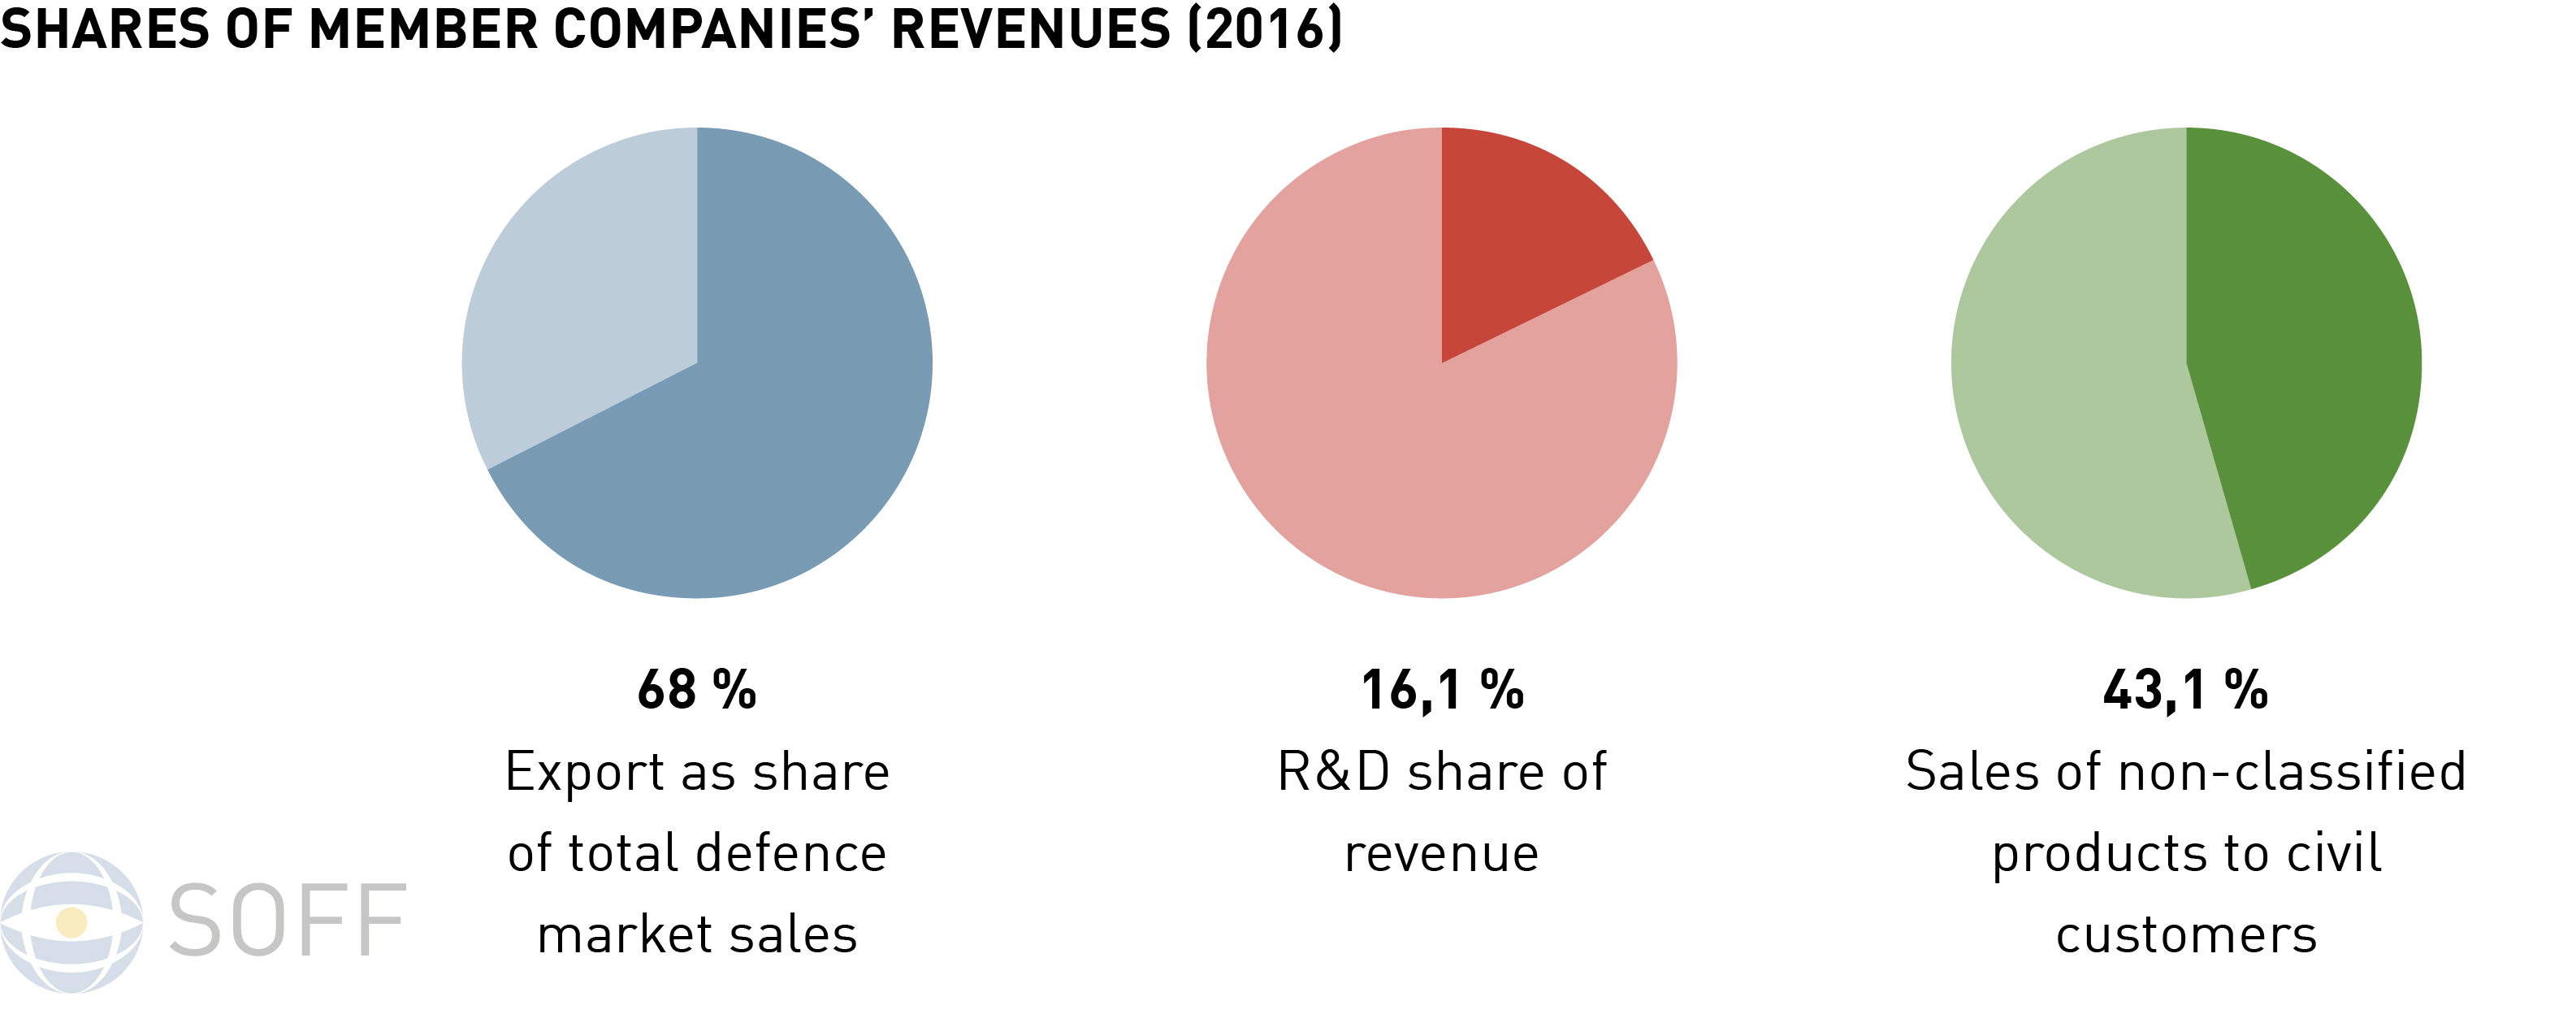 Shares of member companies´revenues 2016